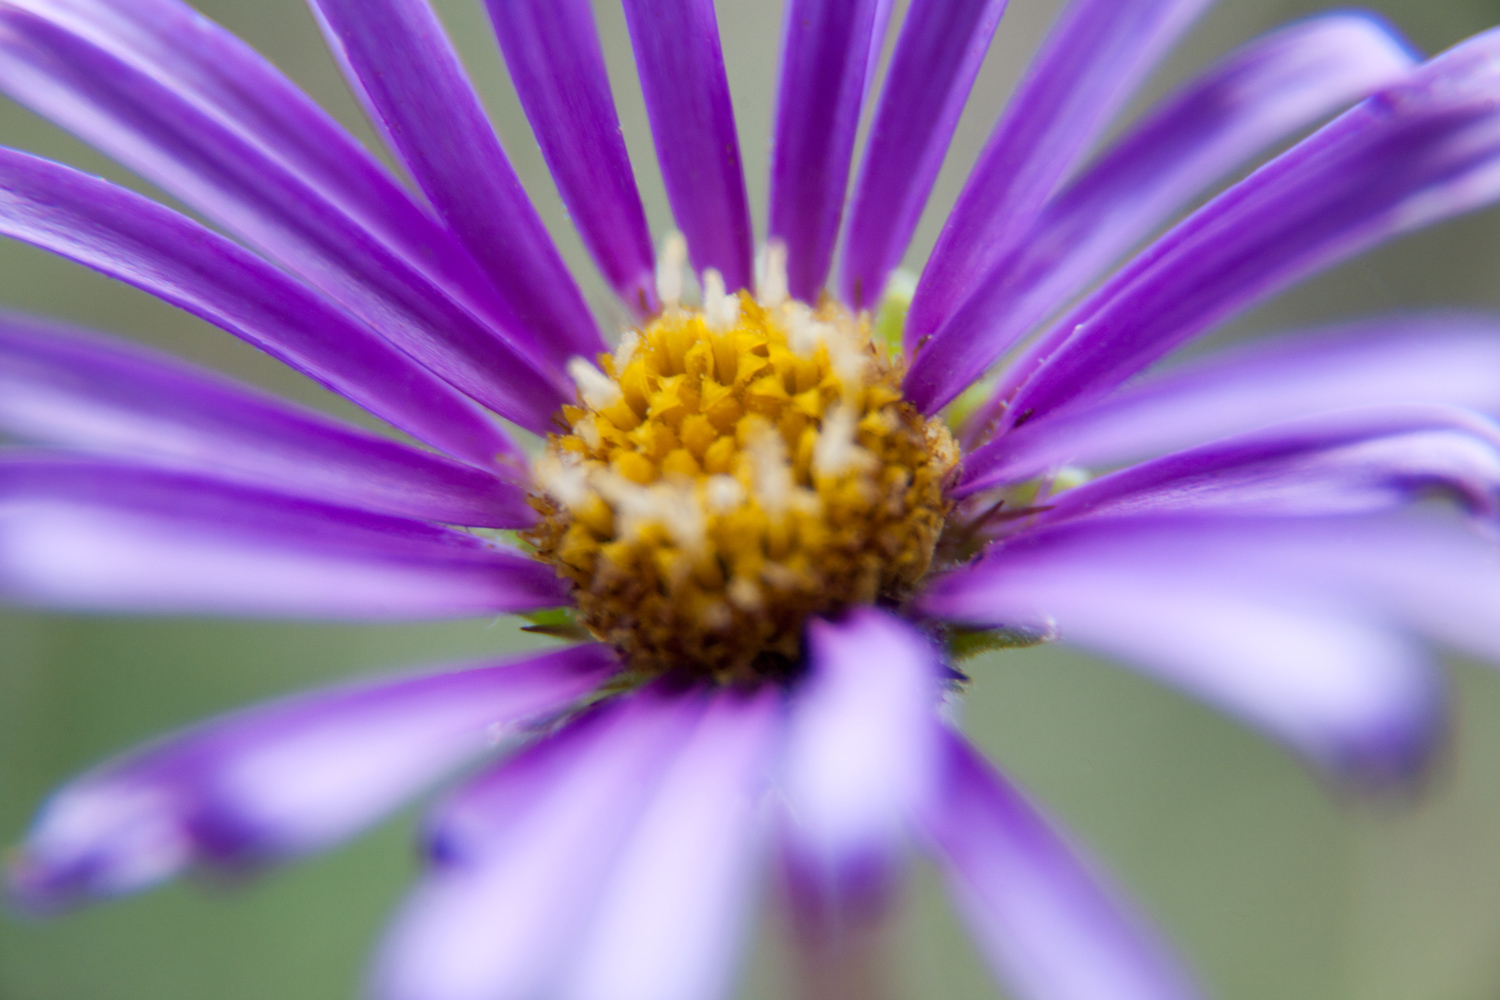 2 - 5 Tips for Photographing Flowers with Impact